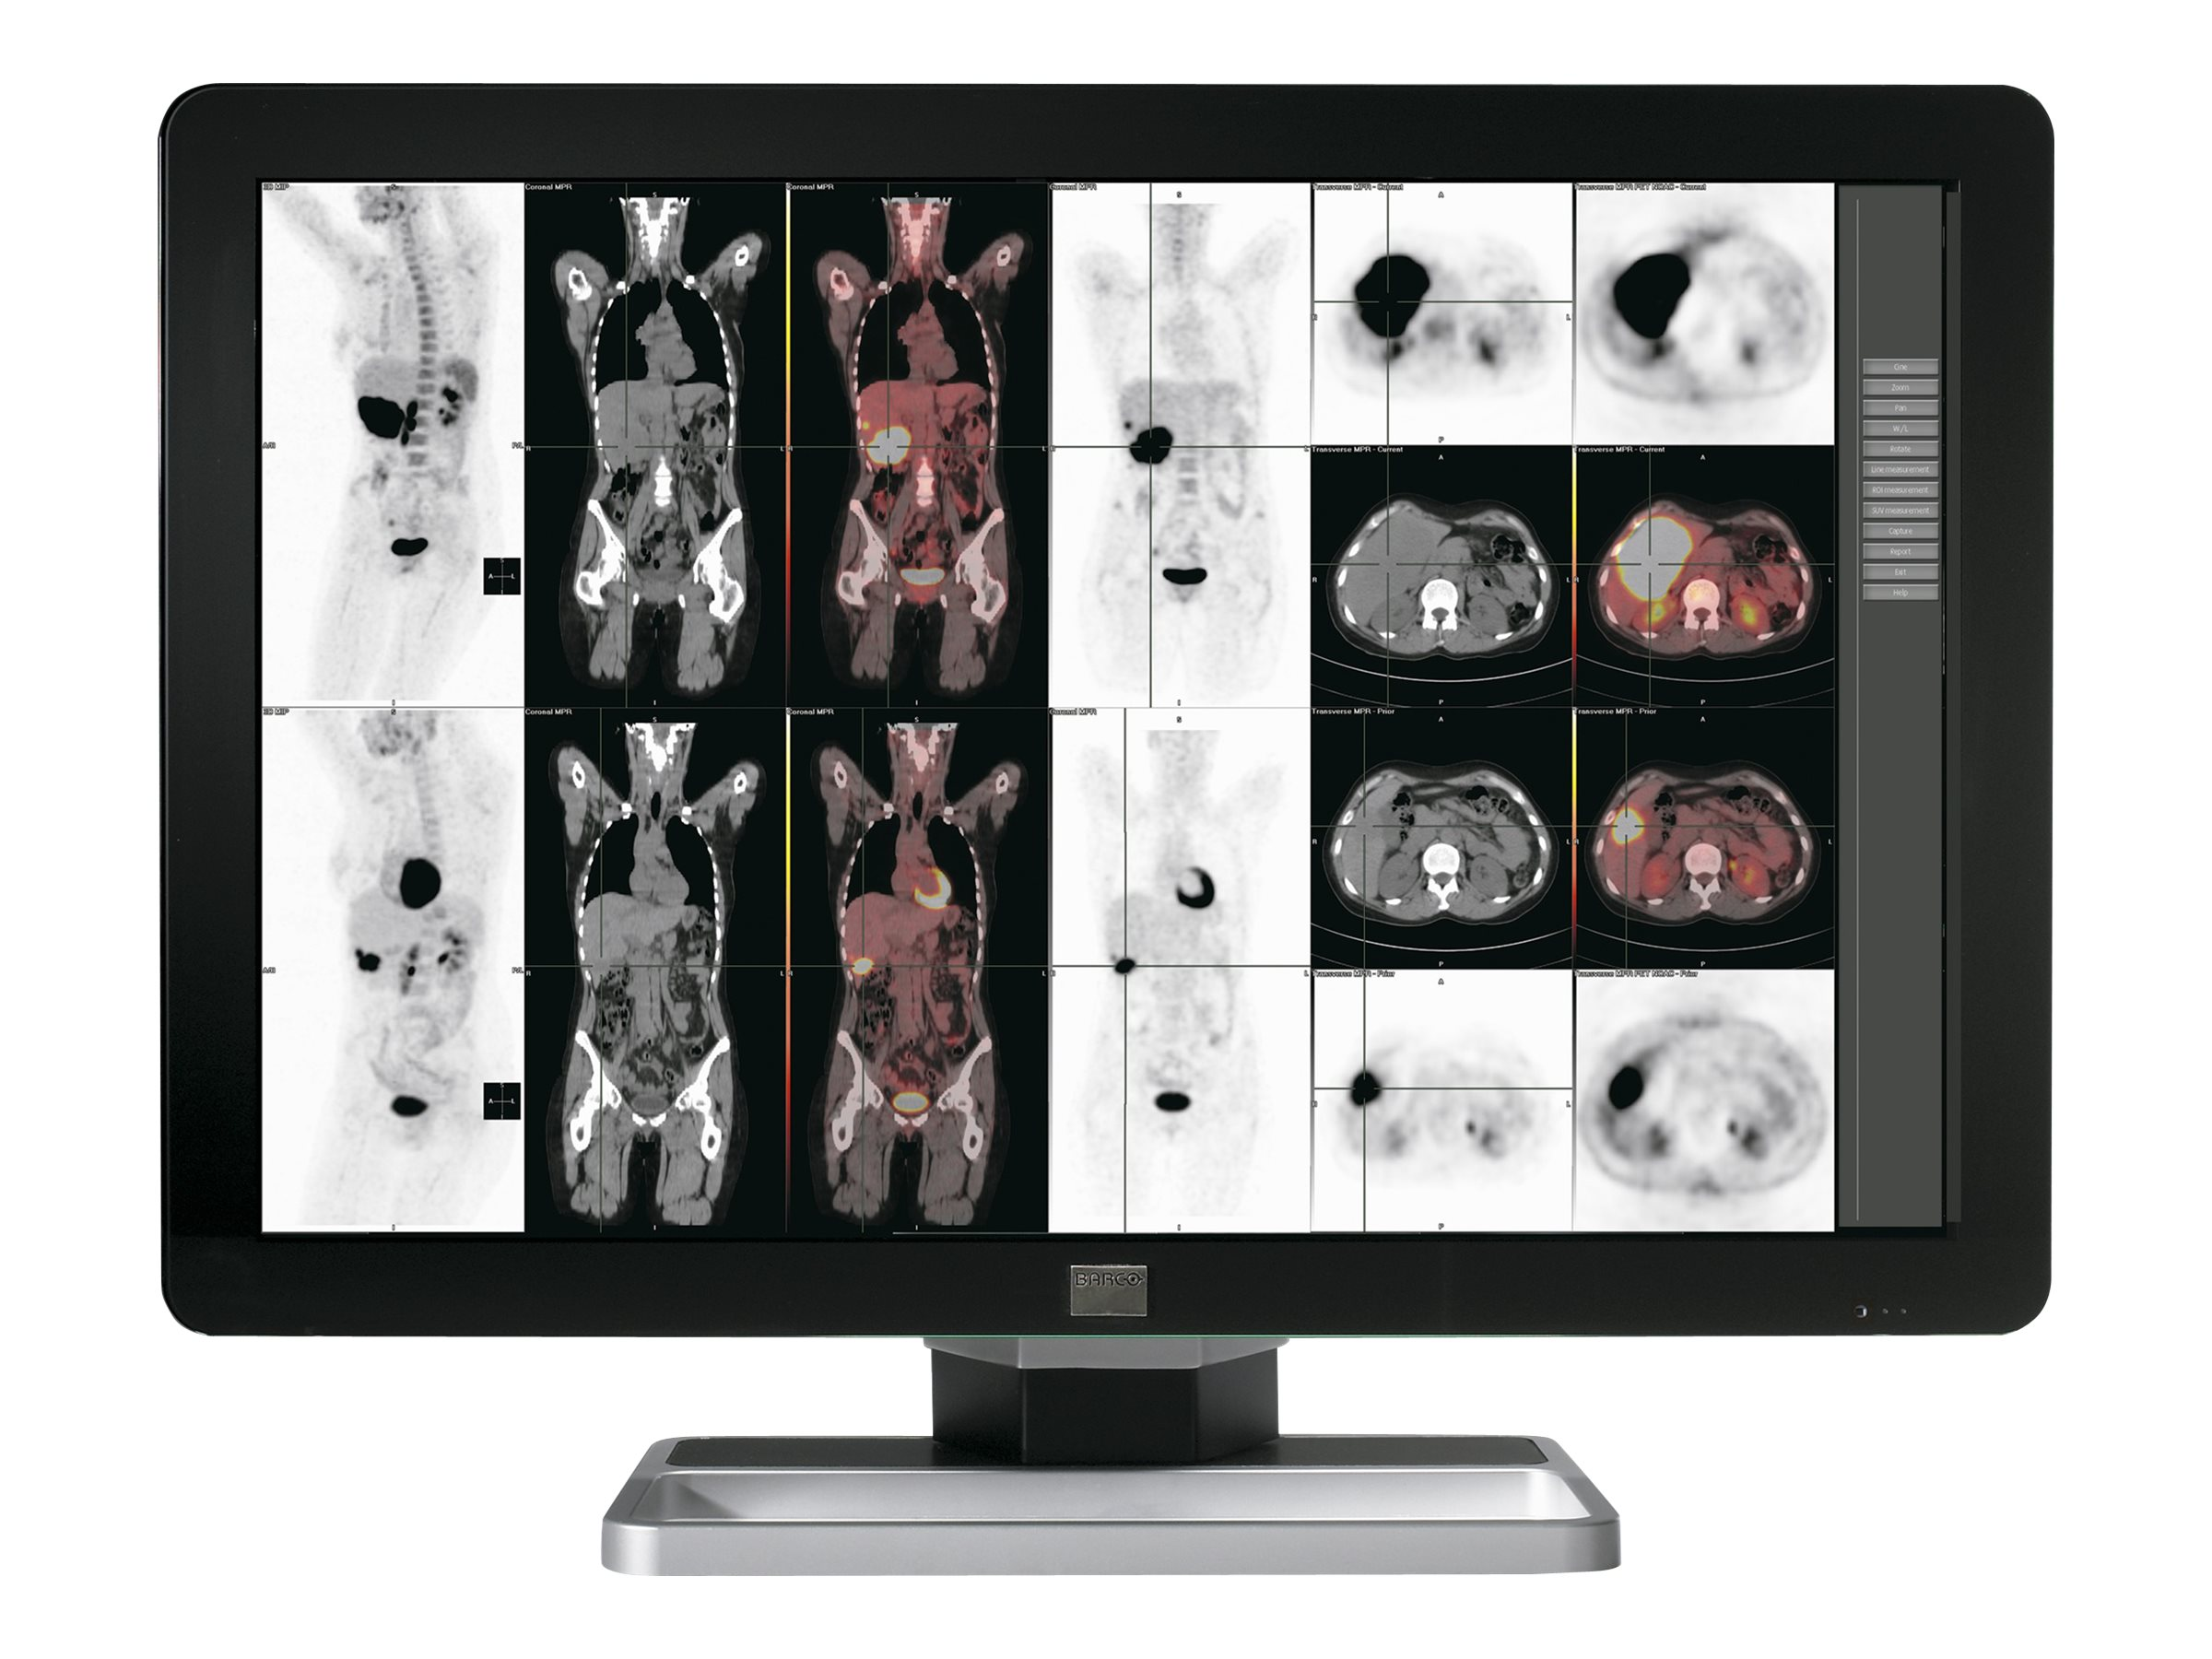 Barco 30.4 Coronis Fusion 6MP LED-LCD Display, Black, K9602743, 30732165, Monitors - Medical